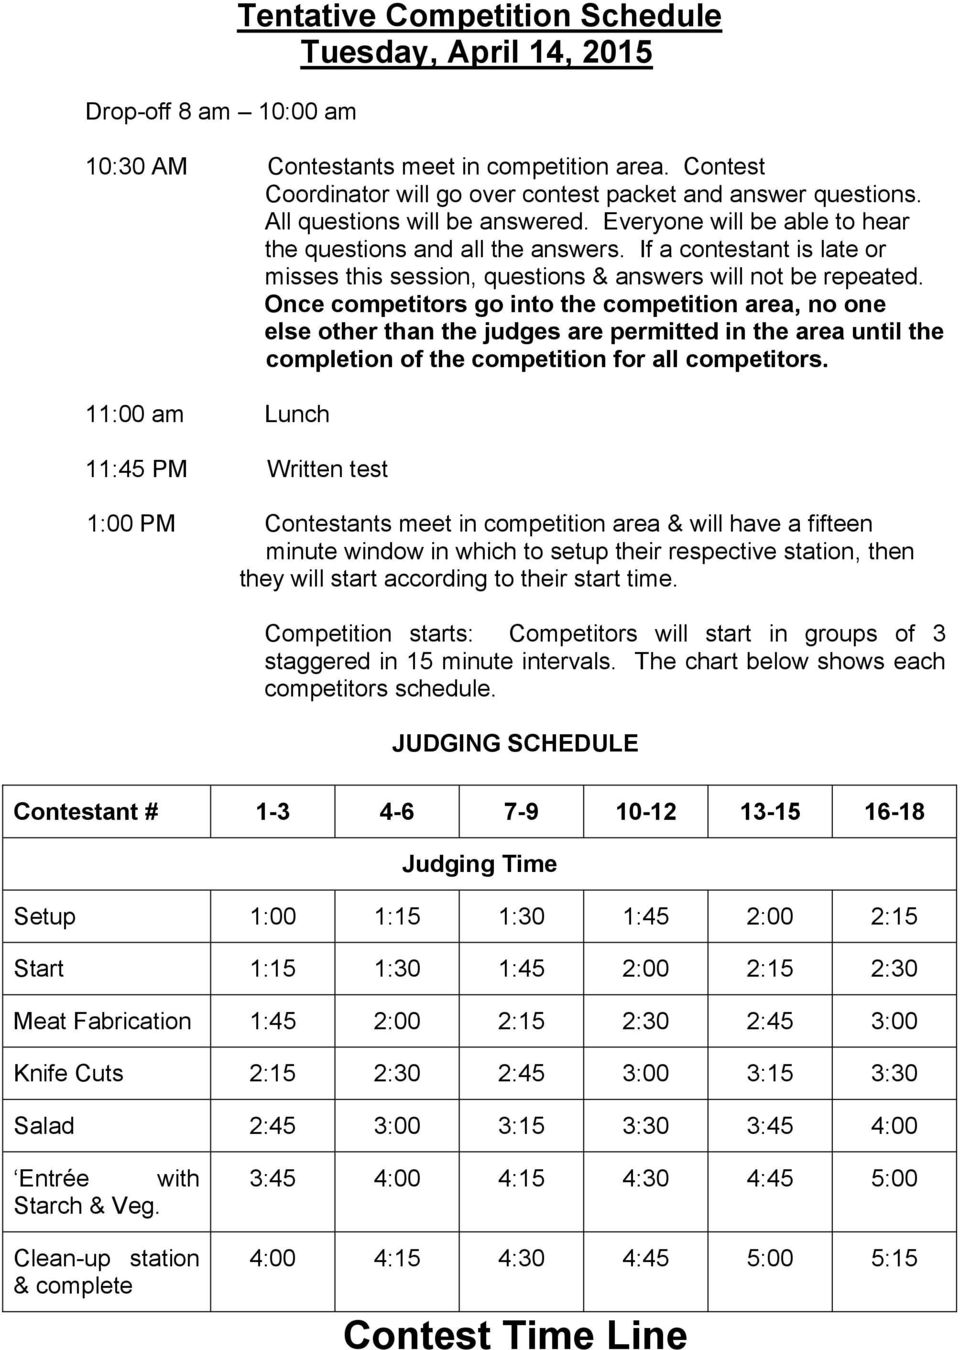 Once competitors go into the competition area, no one else other than the judges are permitted in the area until the completion of the competition for all competitors.